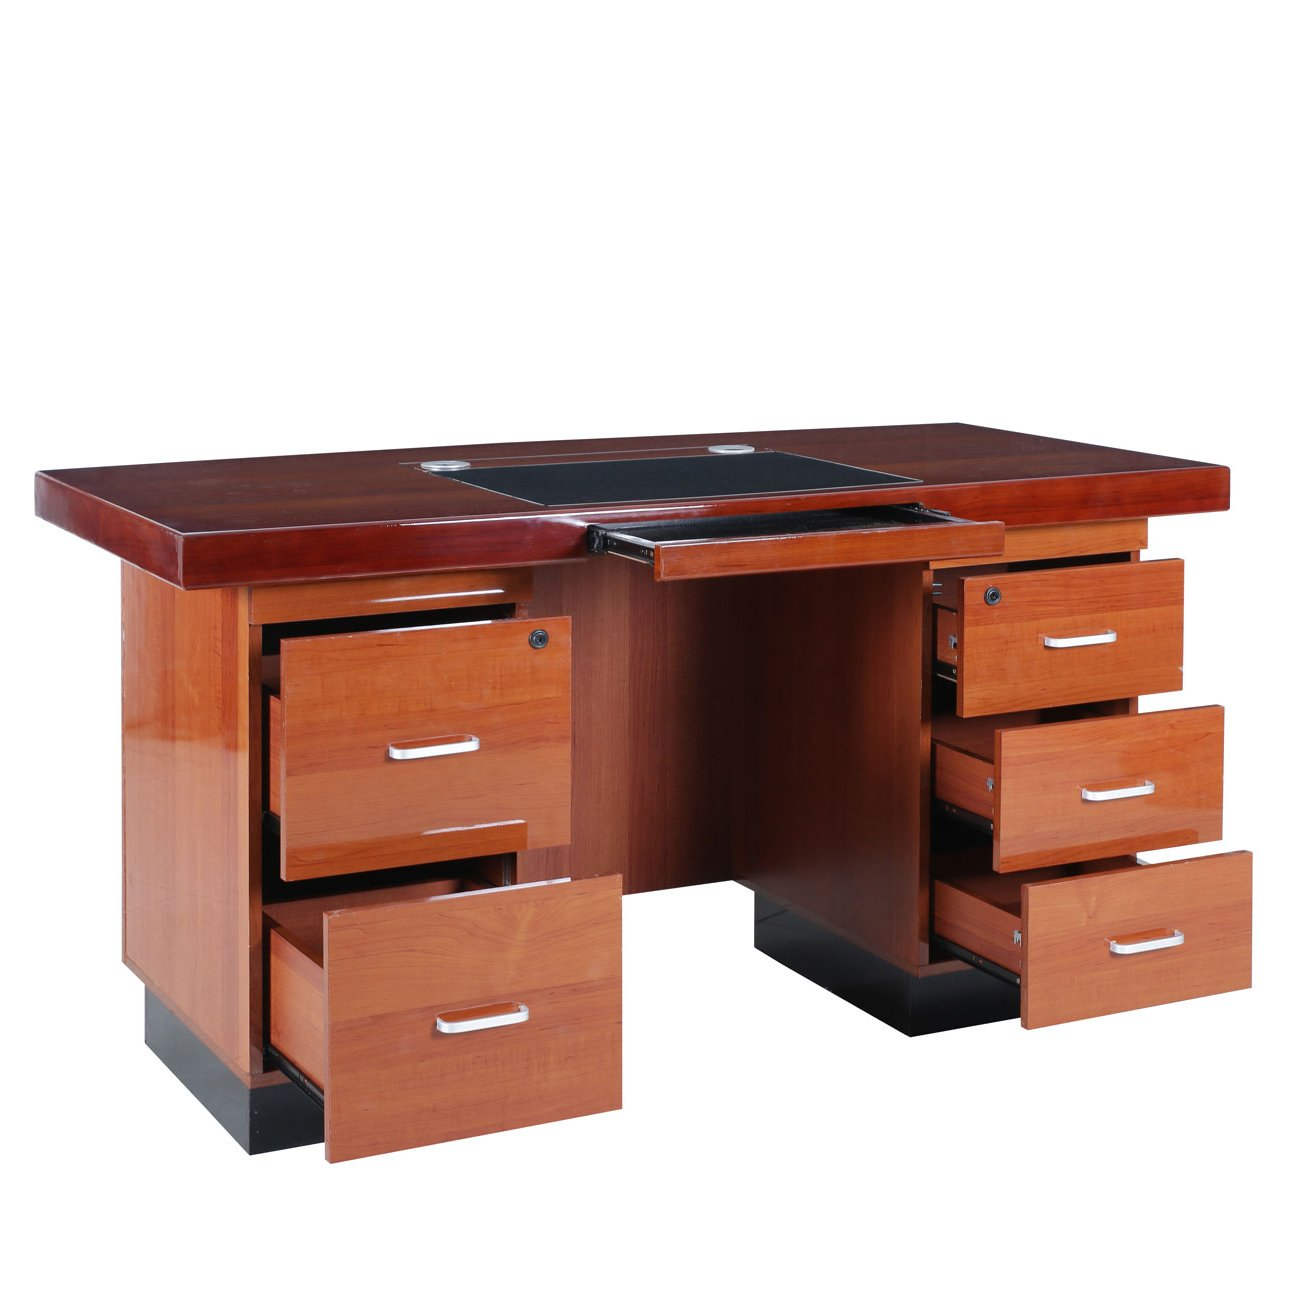 office table with drawers. This Beautiful Rosewood Finish Office Table With Drawers And MDF (medium Density Fibreboard) Is A Modern Style Table. It Looks Like Honey Brown Colour.